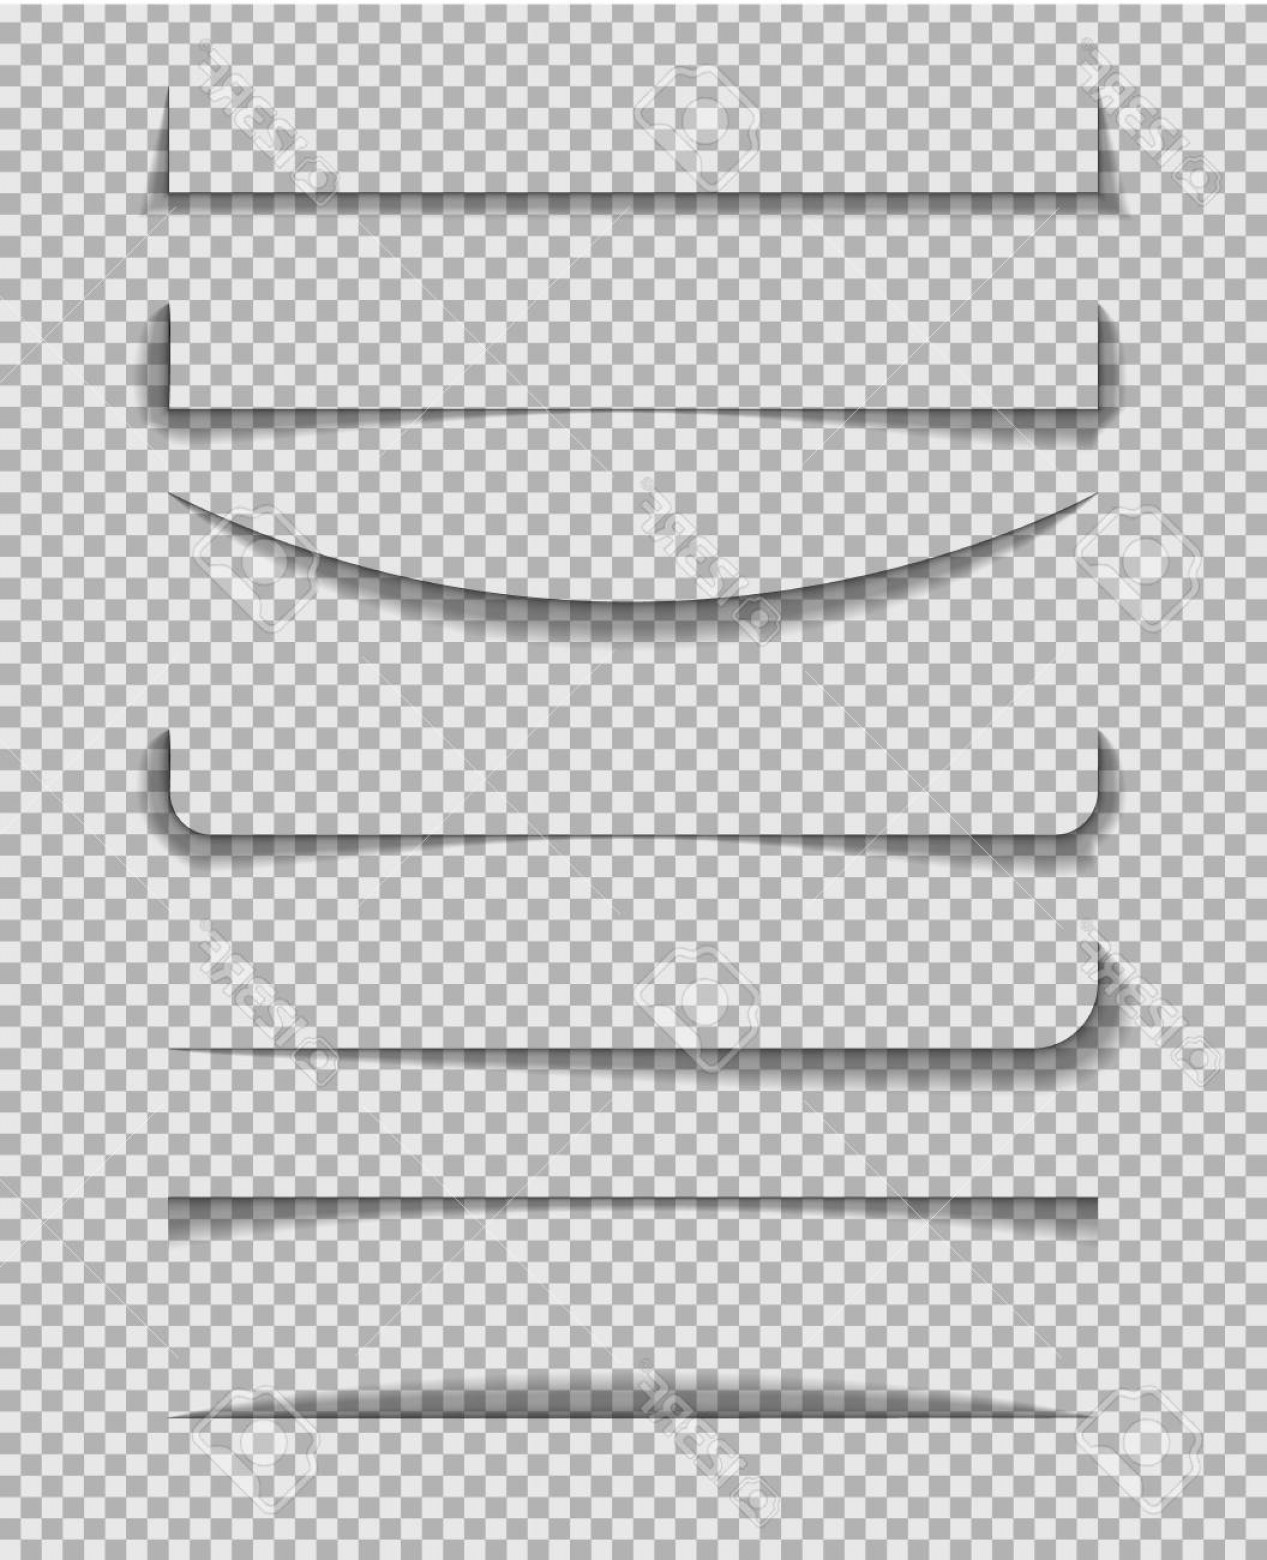 Vector Line Dividers Transparent Backgrounds: Photostock Vector Divider Shadow Line Frame Of Edge Of Paper On Transparent Background Paper Line With Shadow For Bann